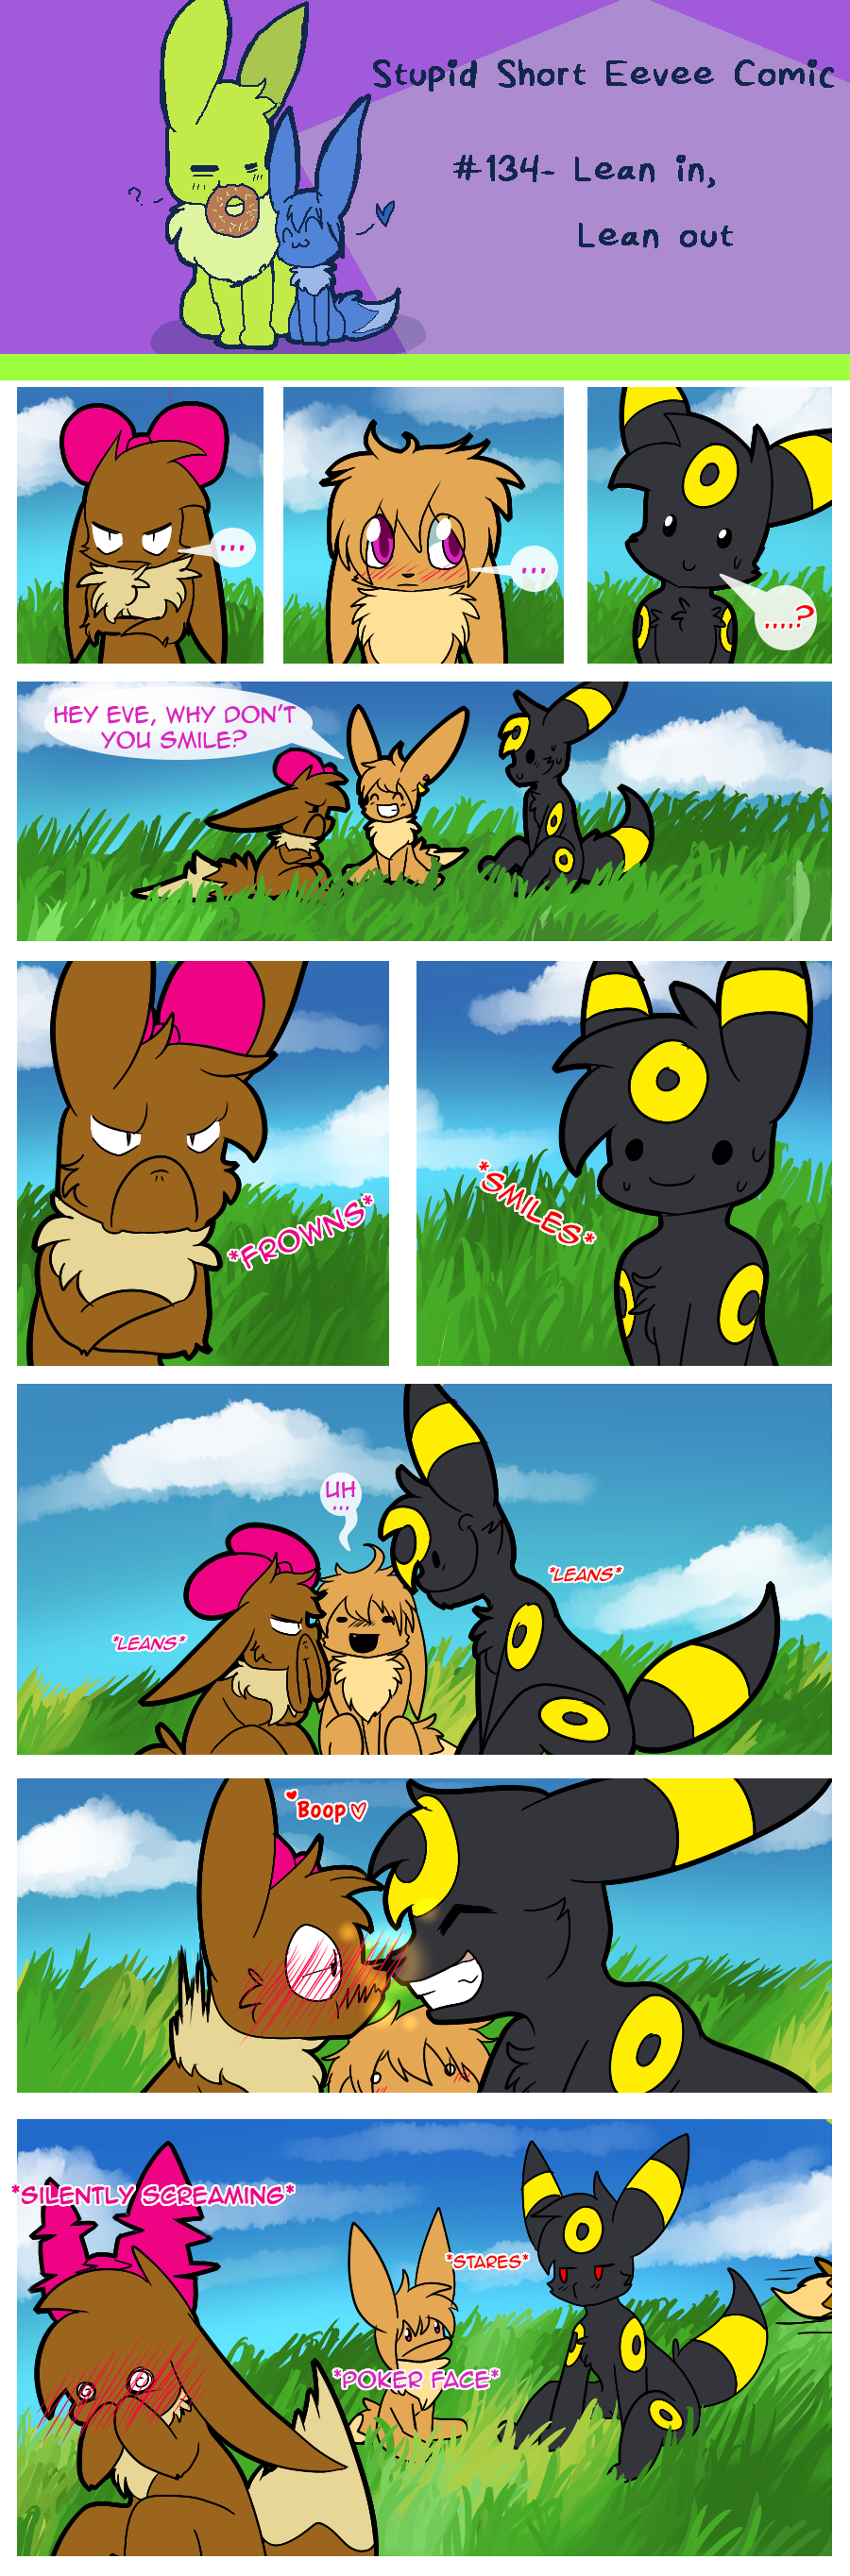 The two eevees on the header